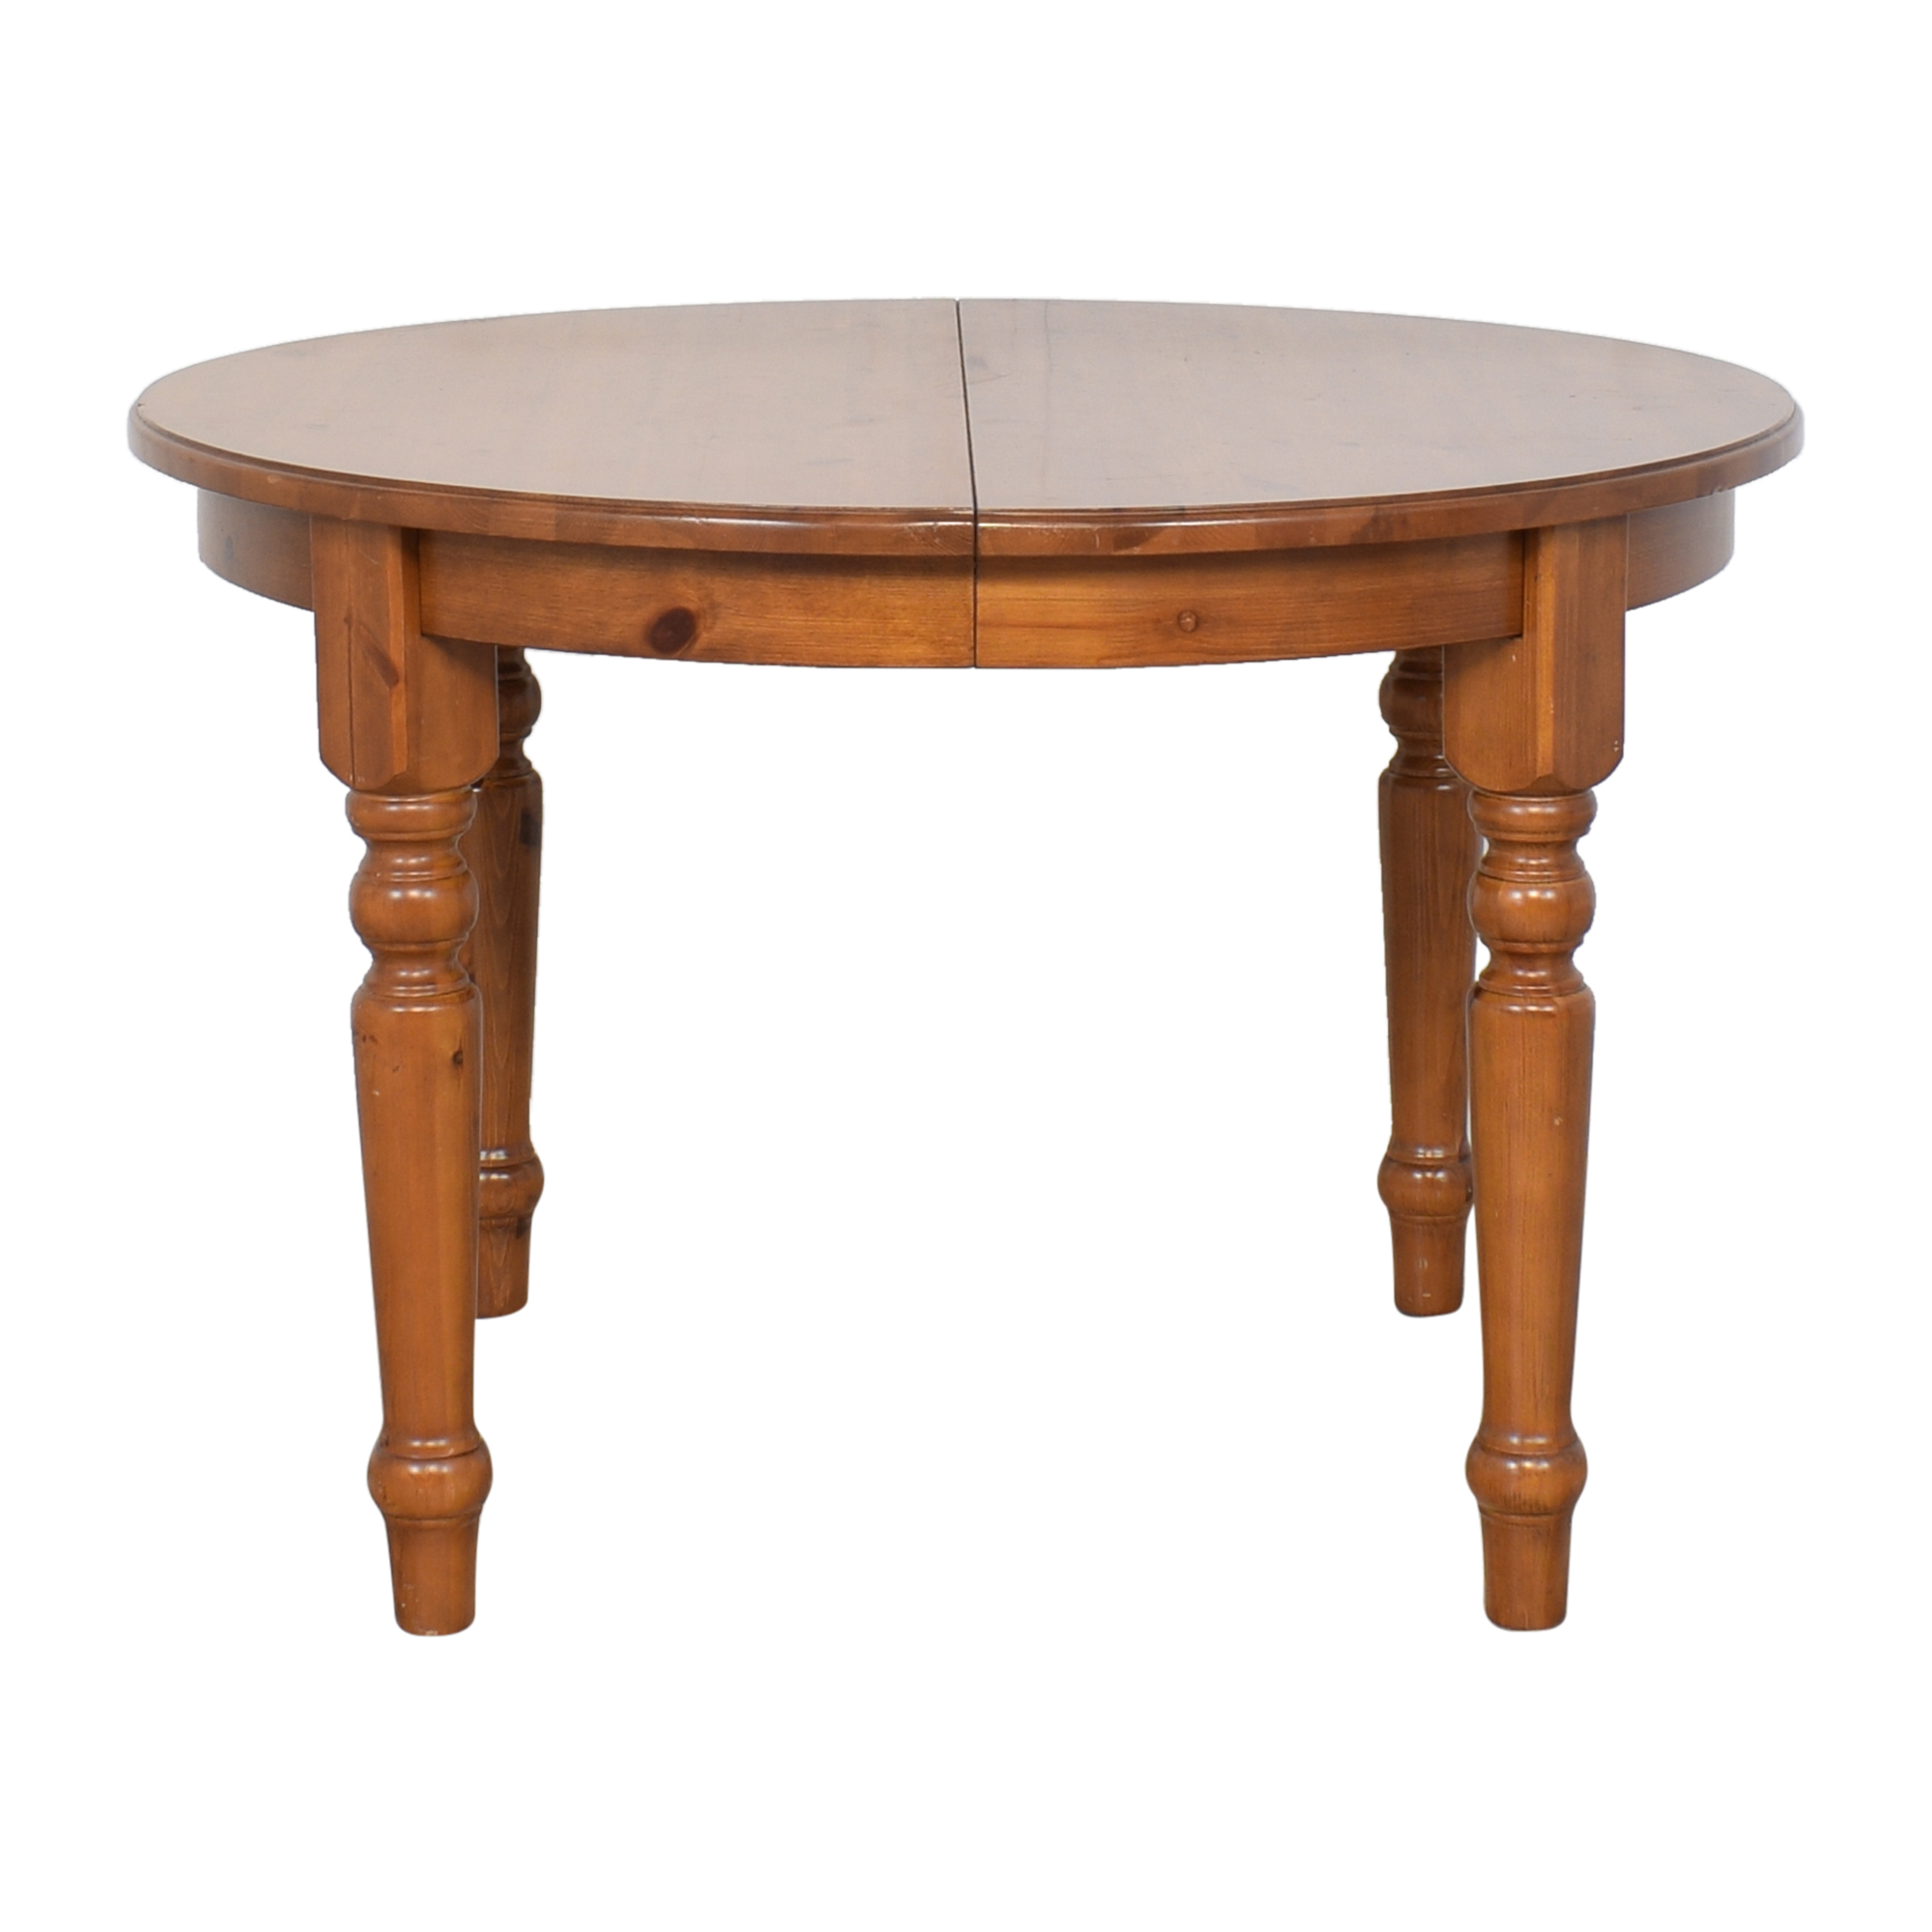 Pottery Barn Pottery Barn Round Extending Table price